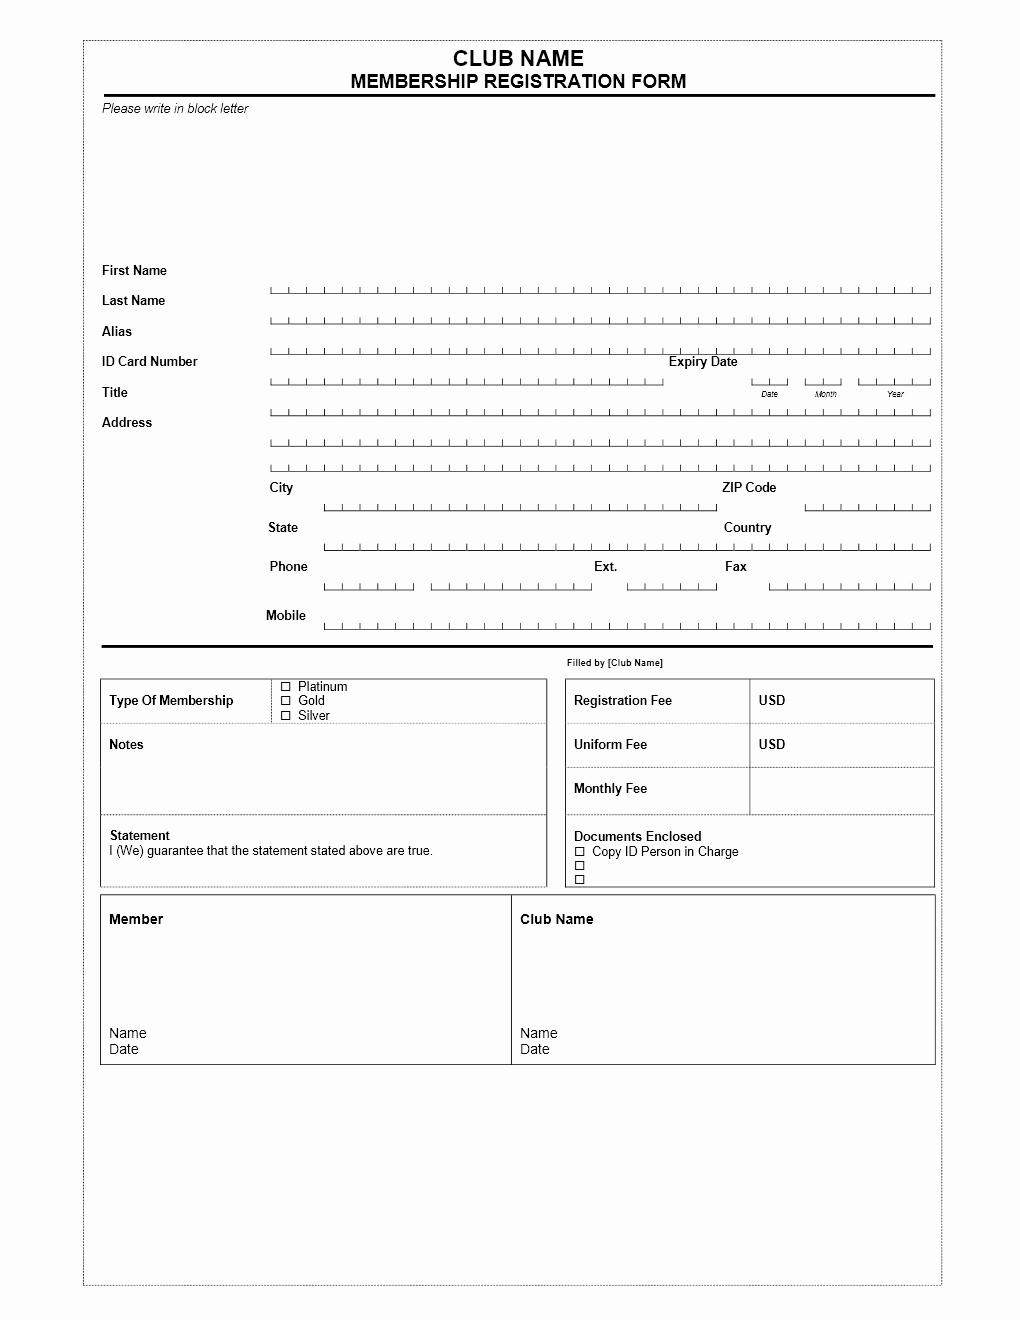 Registration form Template Word Lovely Club Membership Application form